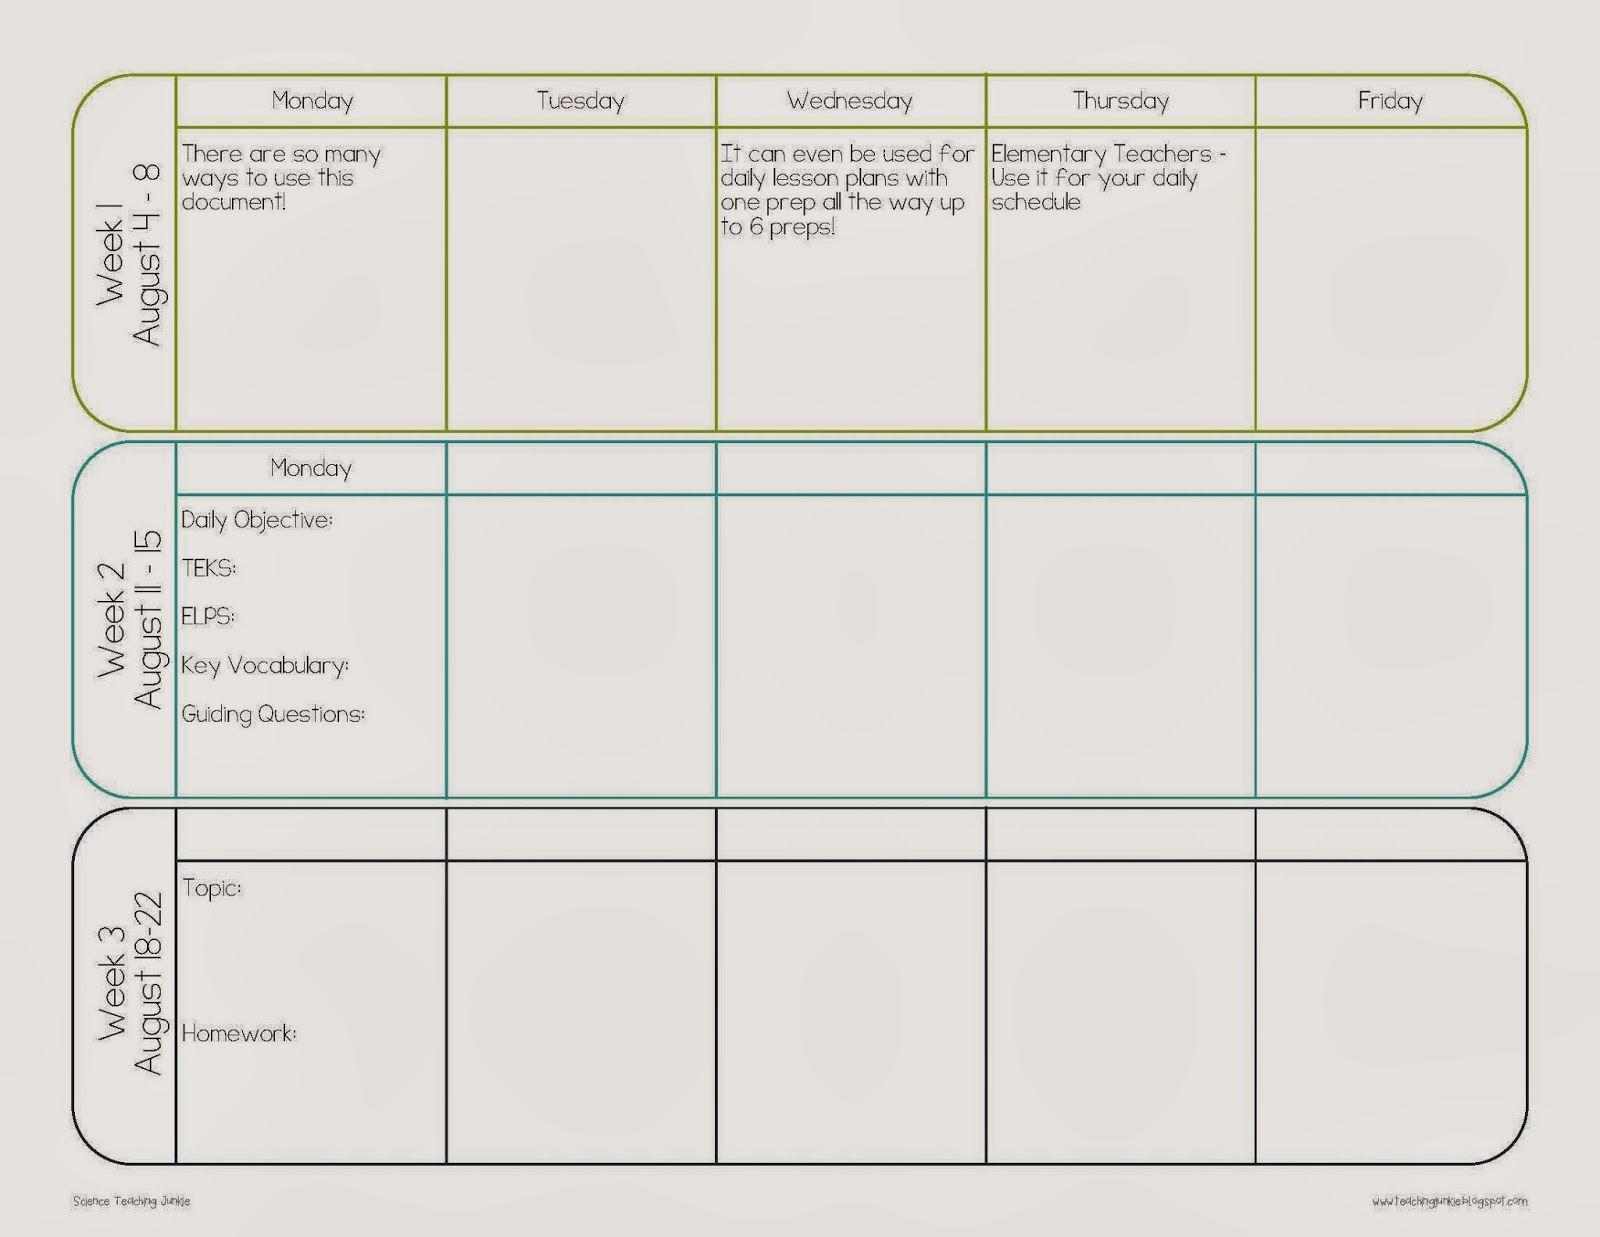 pacing calendar template for teachers science teaching junkie inc create your own teacher